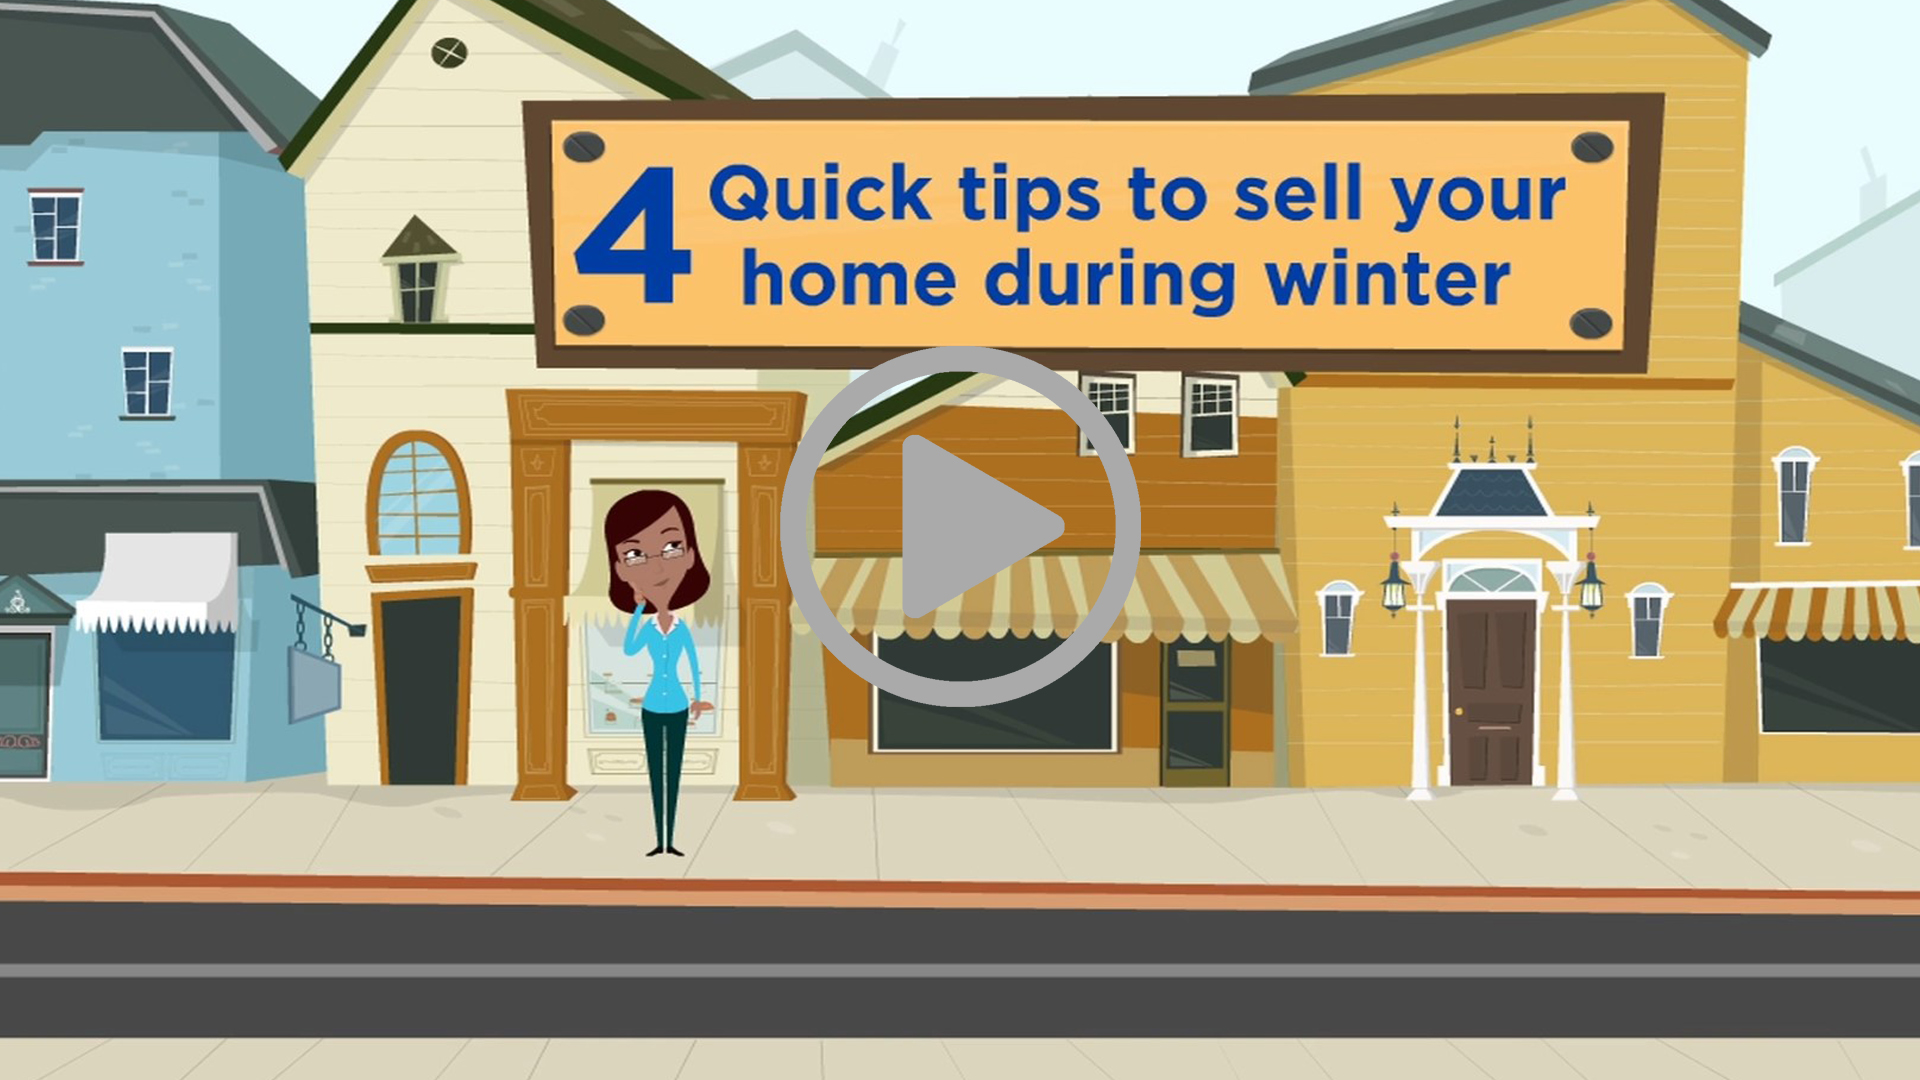 4 QUICK TIPS TO SELL YOUR HOME DURING WINTER